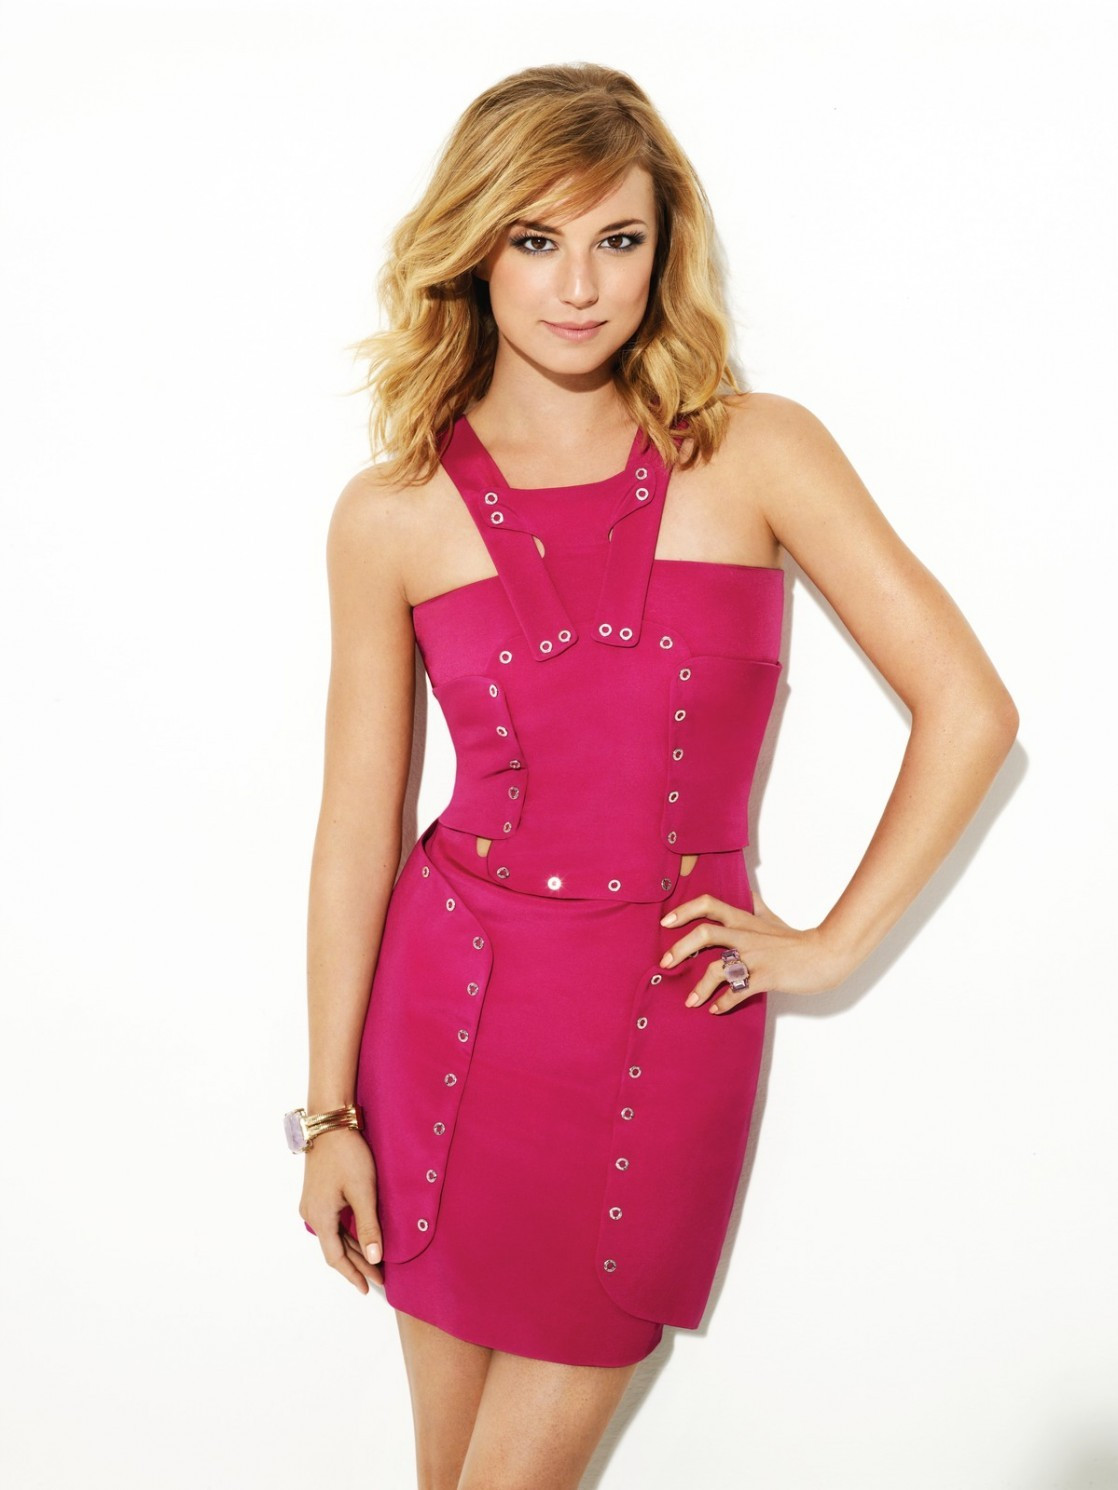 Emily VanCamp Sexy Pink Dress